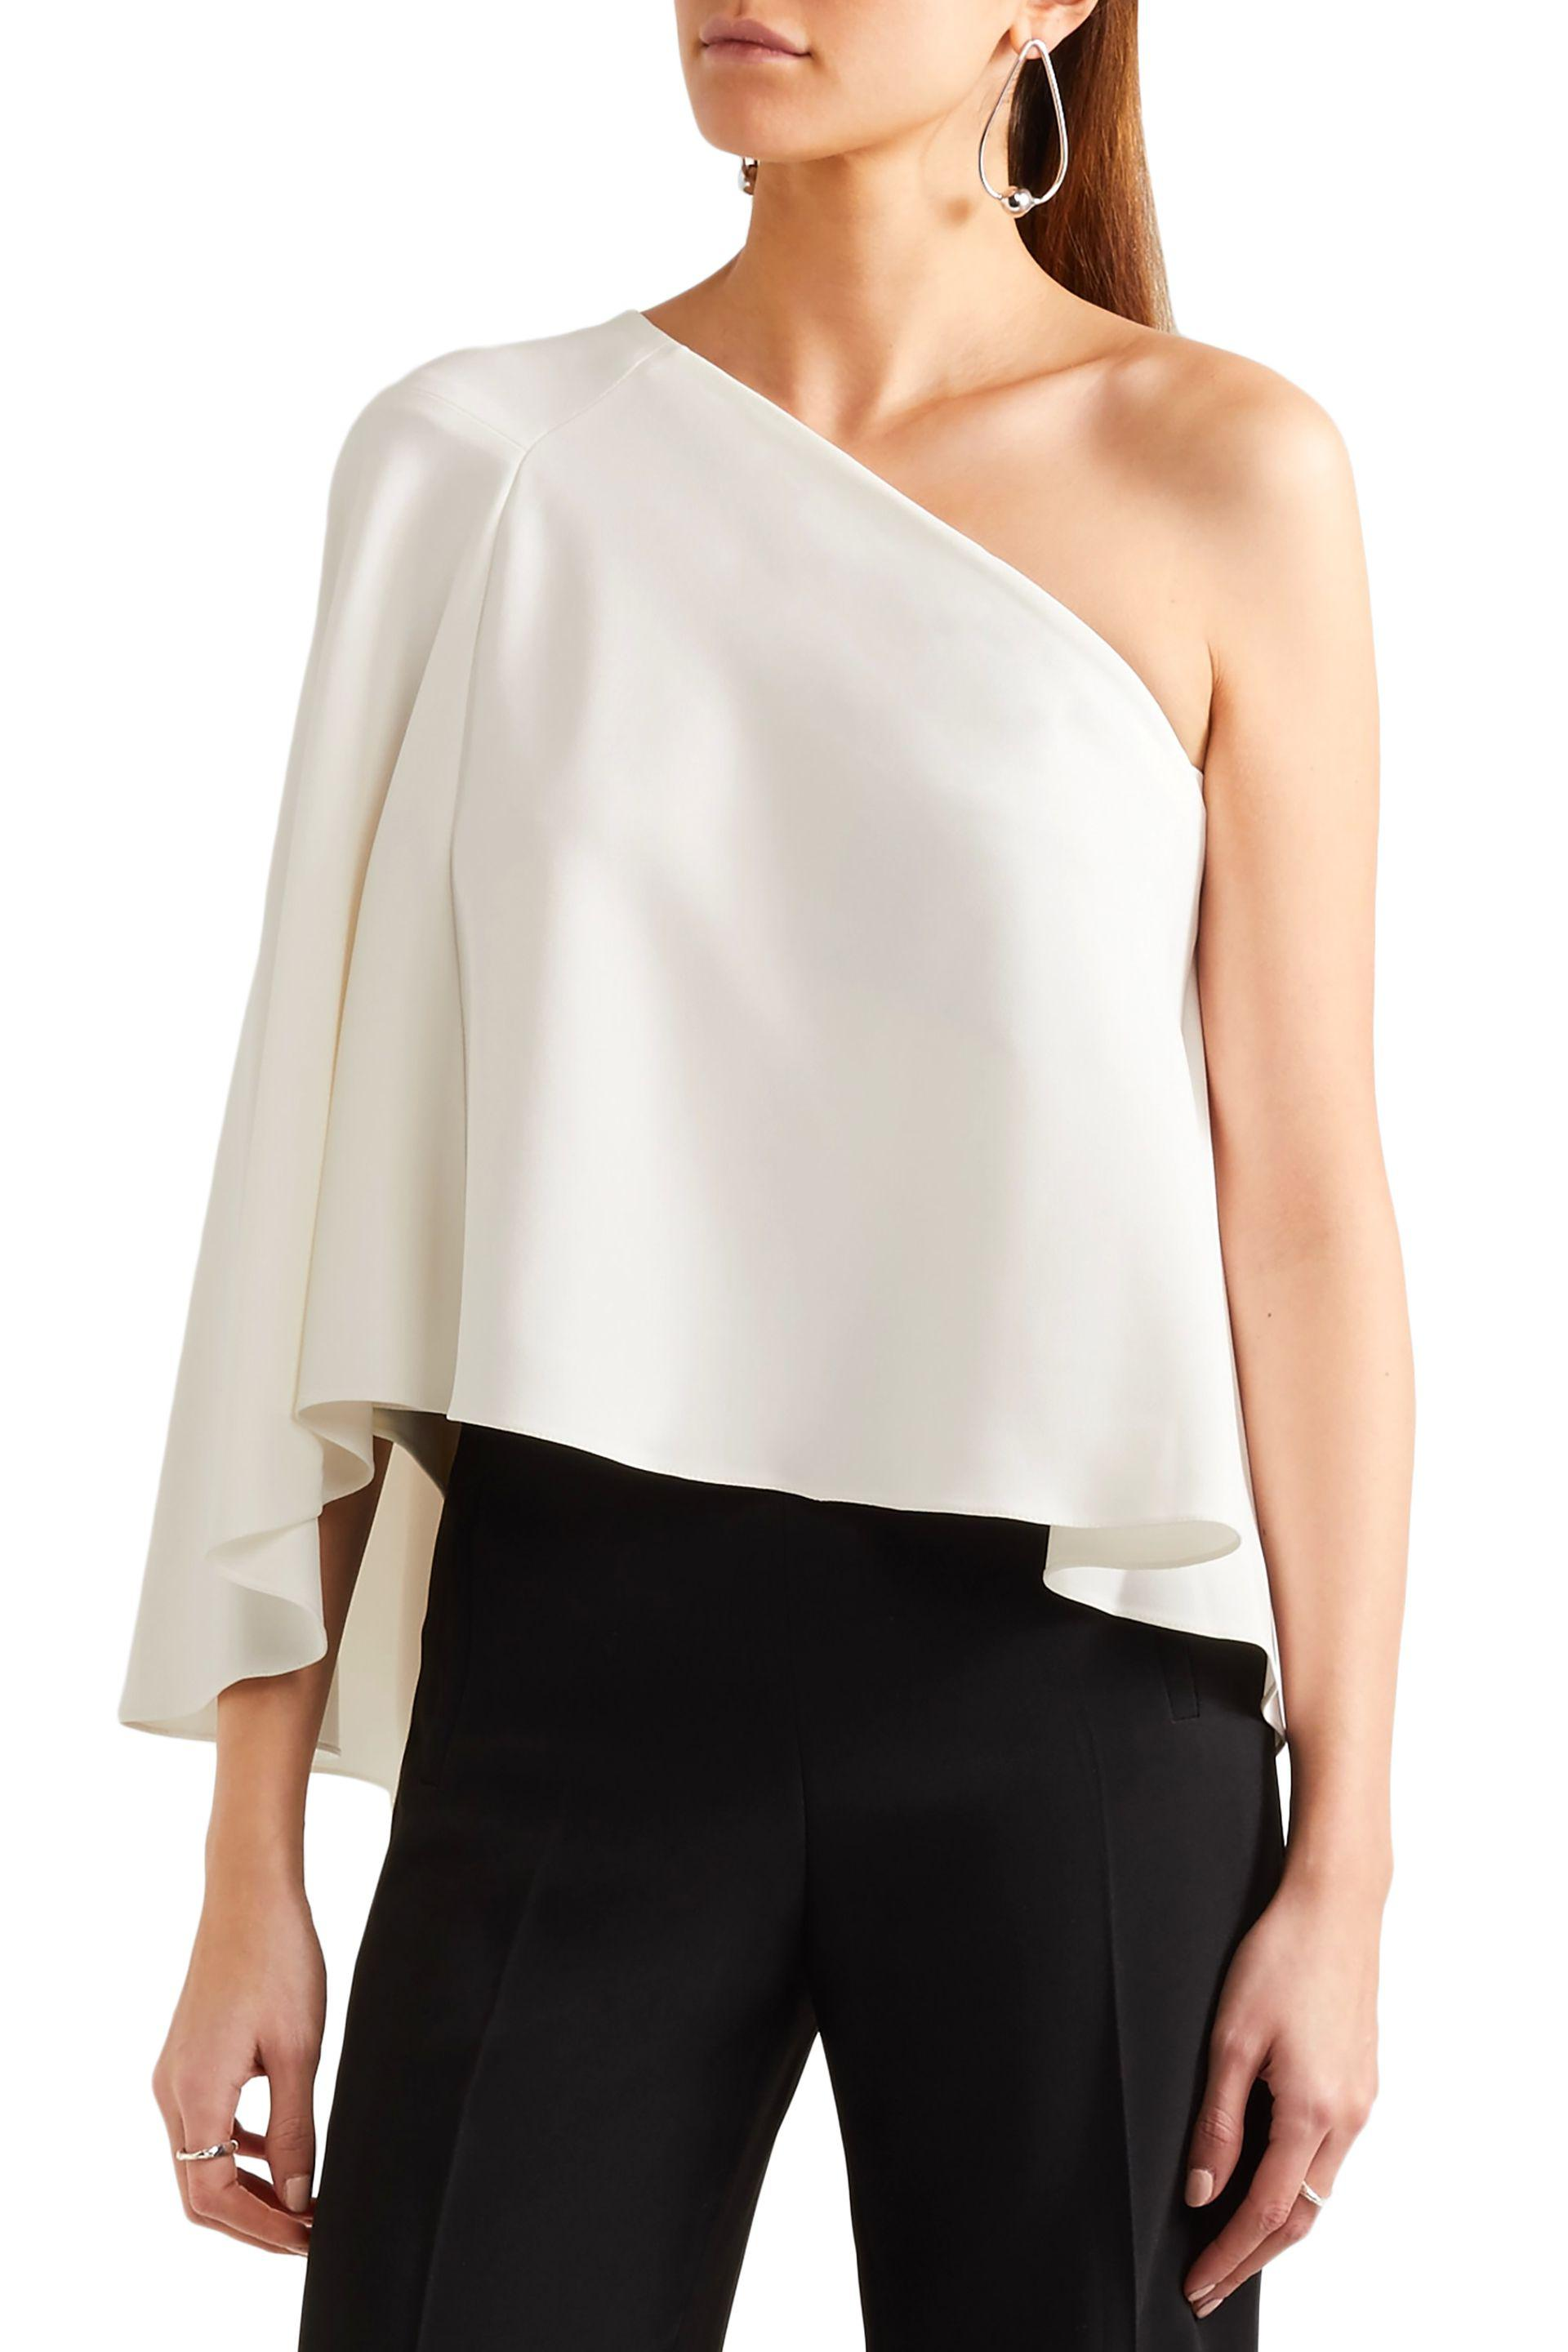 Roland Mouret Hurley One-shoulder Layered Crepe Top in Ivory (White)